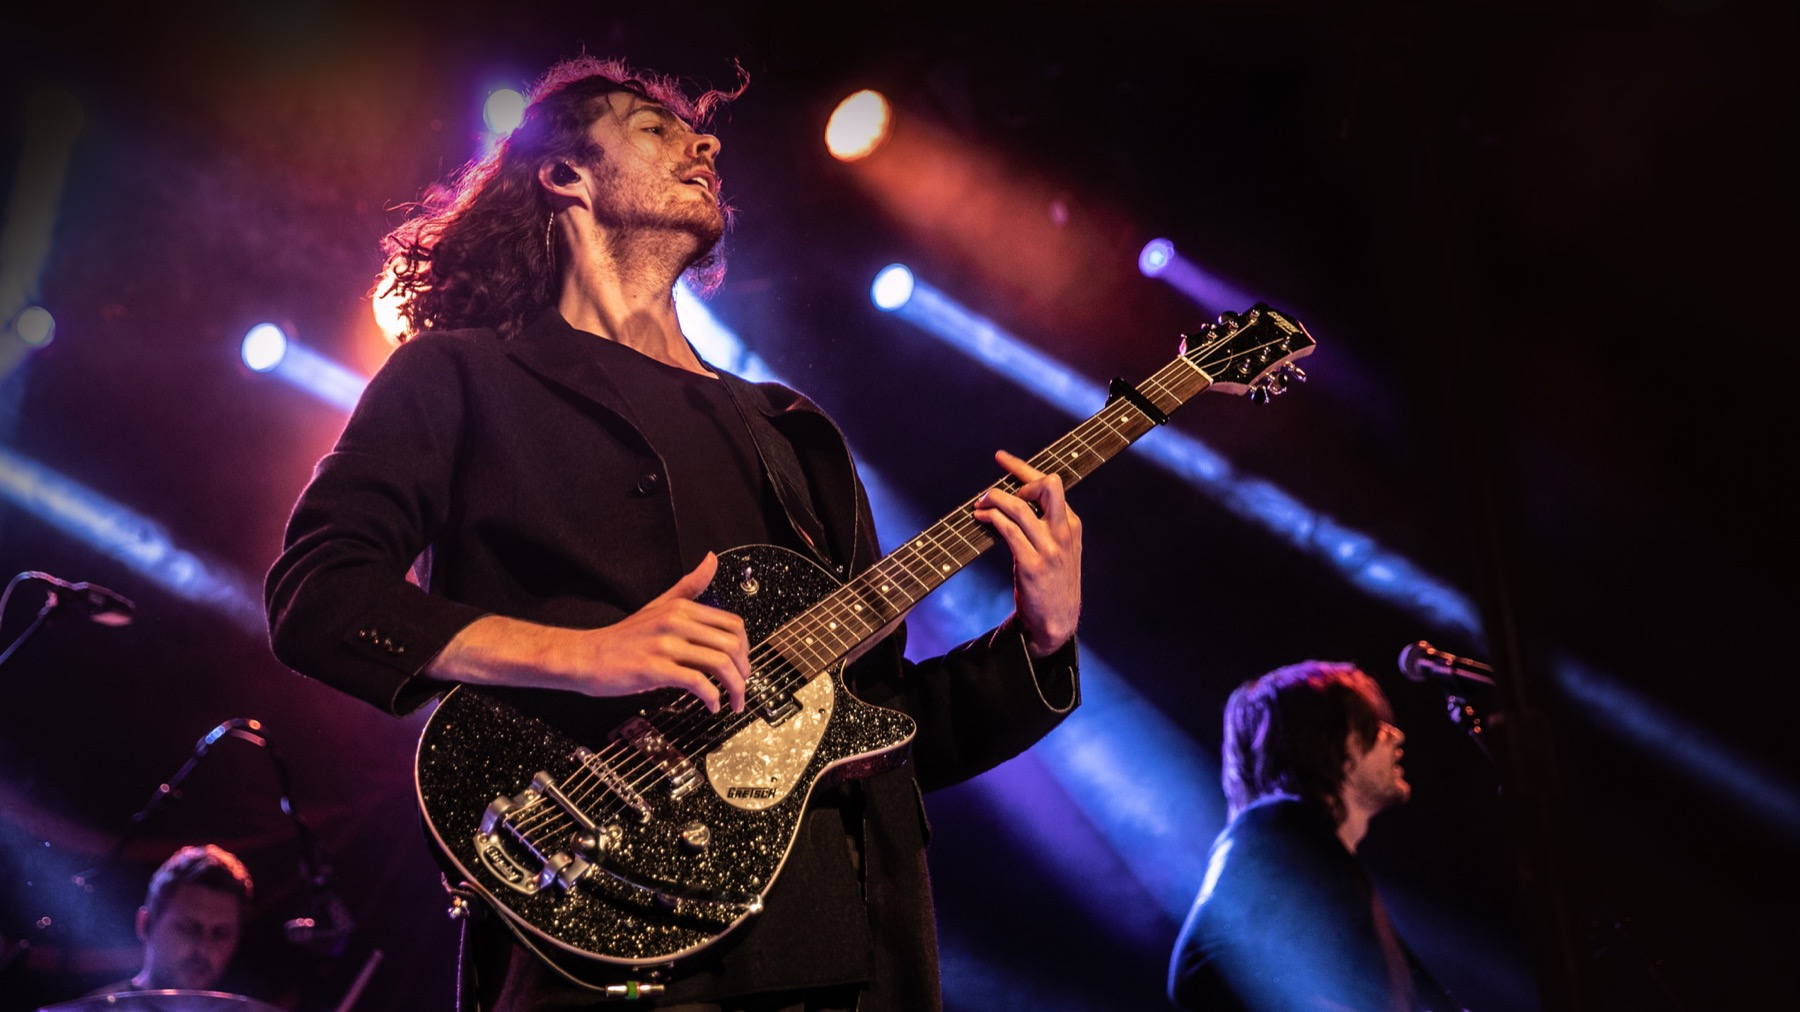 Hozier: Wasteland, Baby! Tour in Chicago